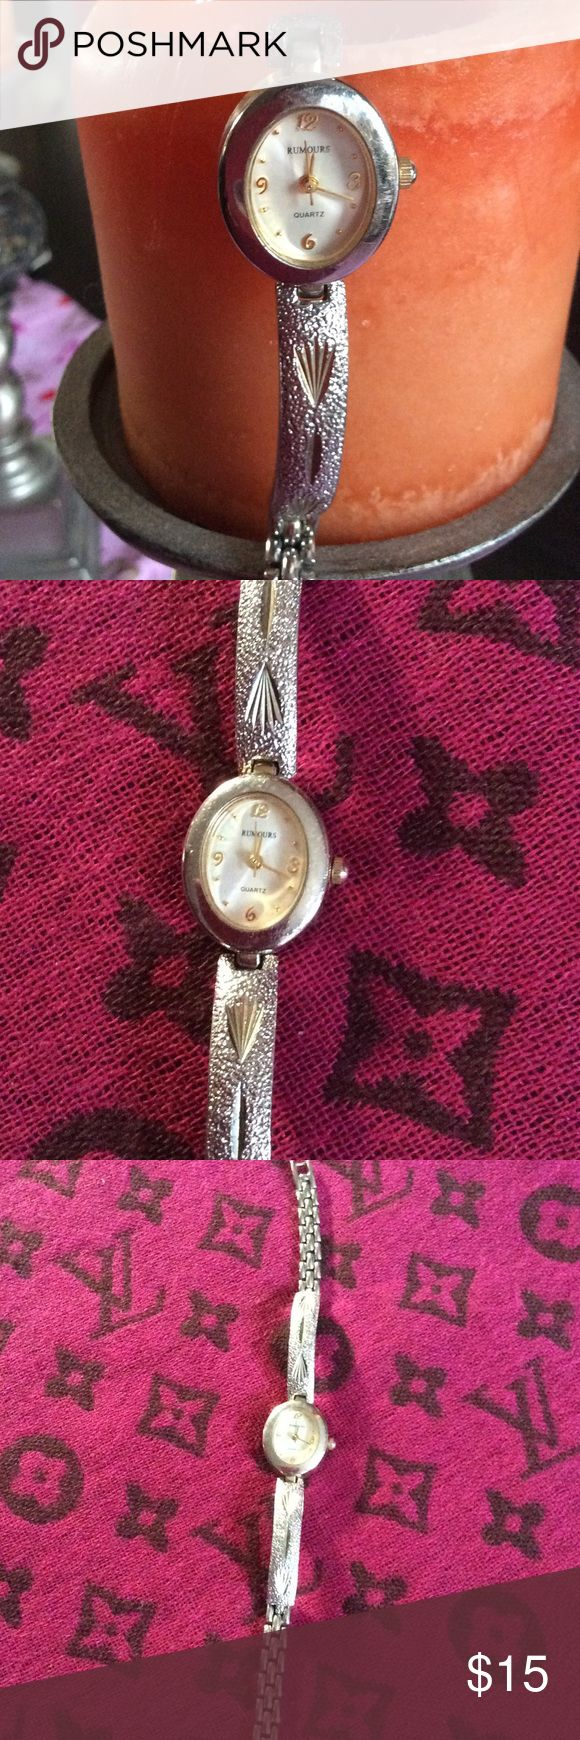 Rumors ladies watch Brushed silver and gold band. 8 1/8 inches approx. when being worn. Very dainty. rumours Jewelry Bracelets